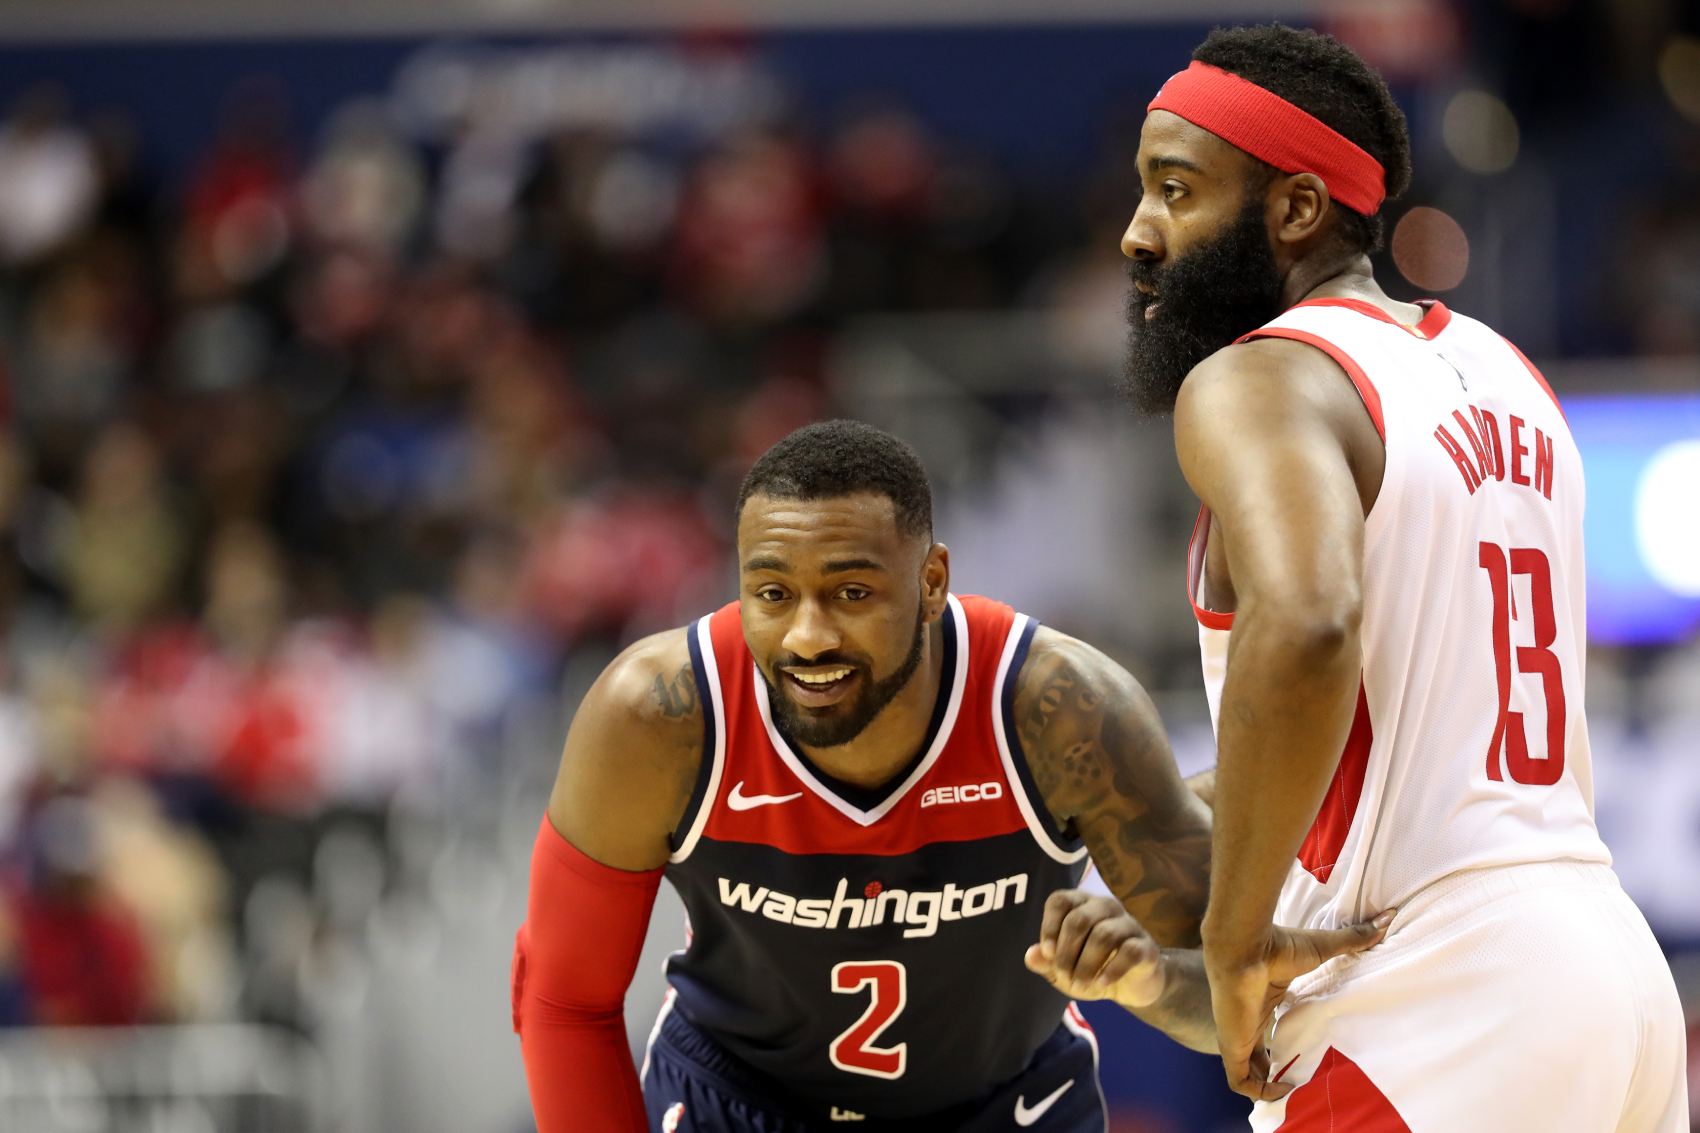 John Wall is new to the Houston Rockets, but he is already sending an encouraging message about James Harden and his future with the team.